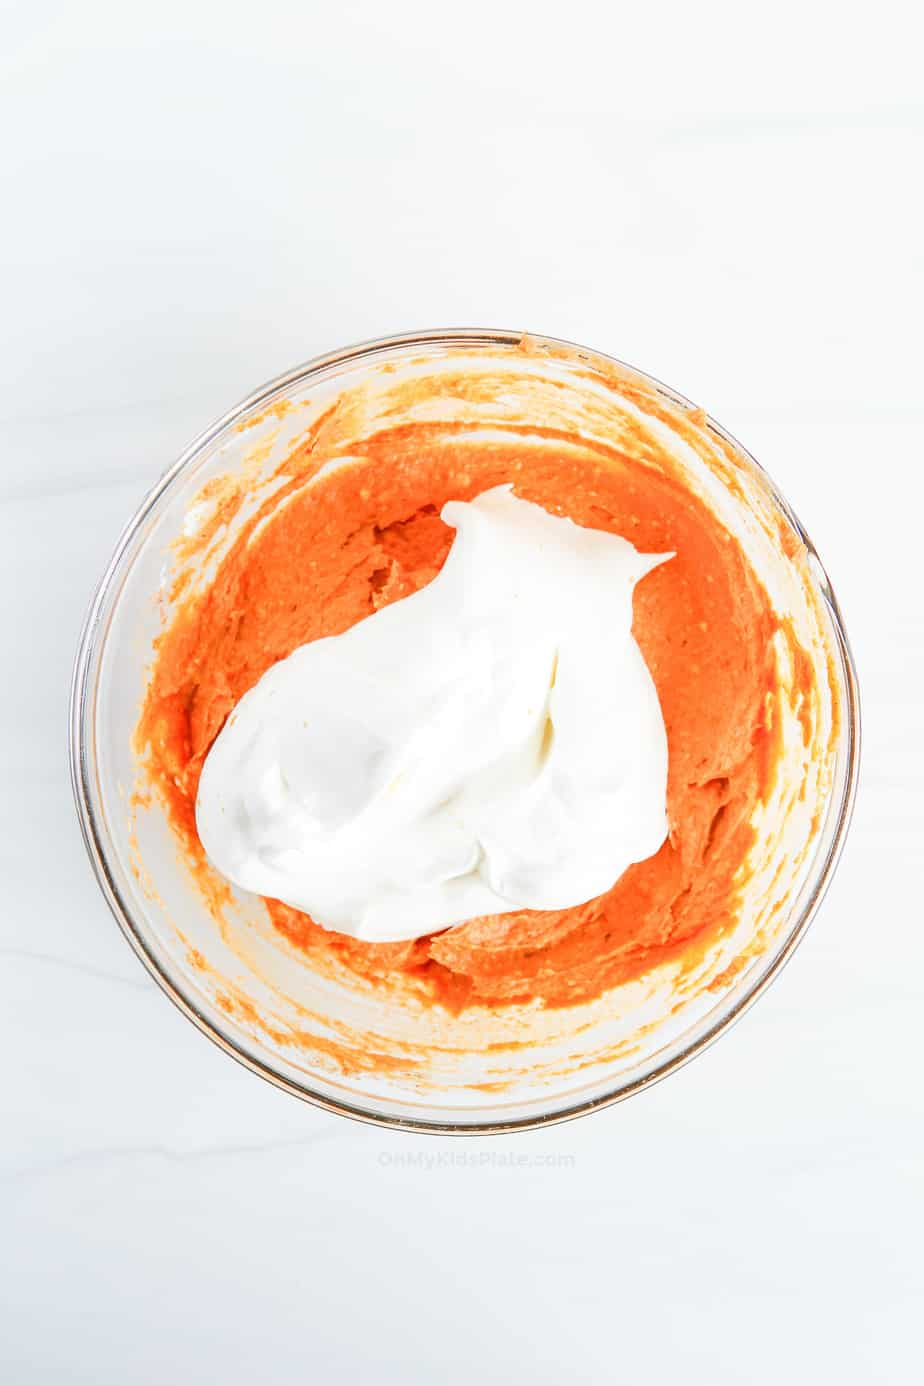 Adding whipped topping and mixing in to the pumpkin dip